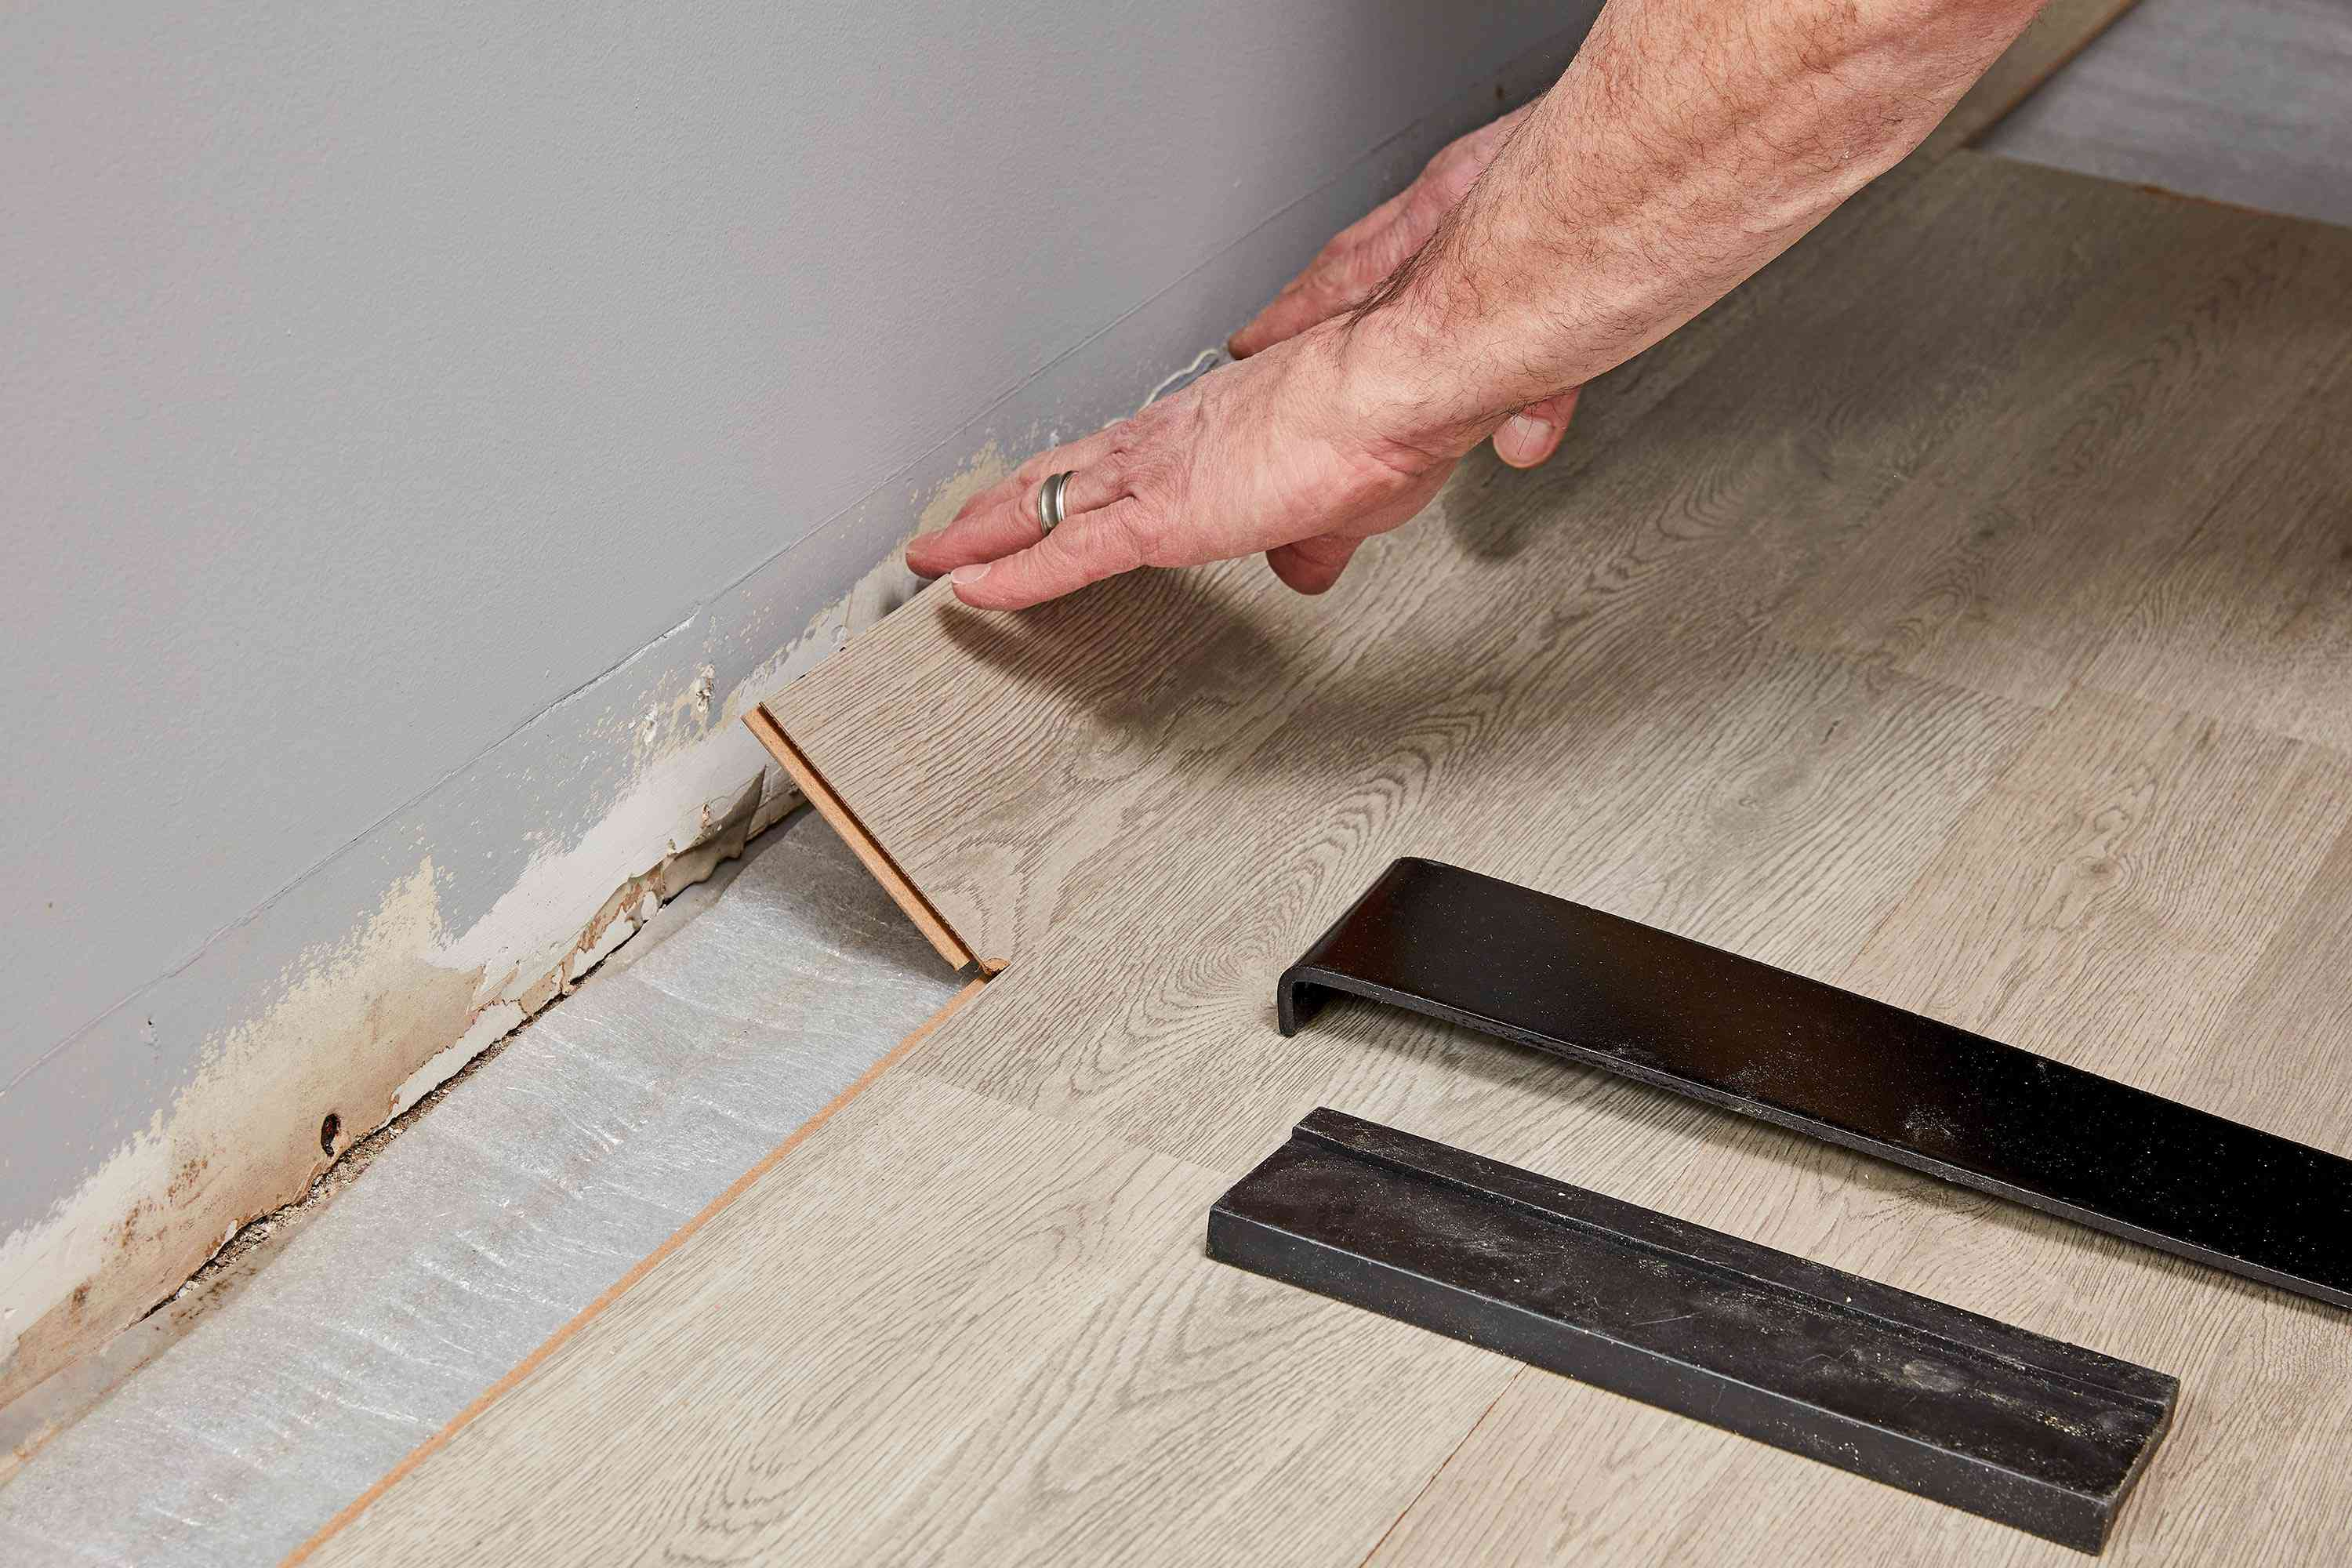 How To Install Laminate Flooring, How To Properly Cut Laminate Flooring